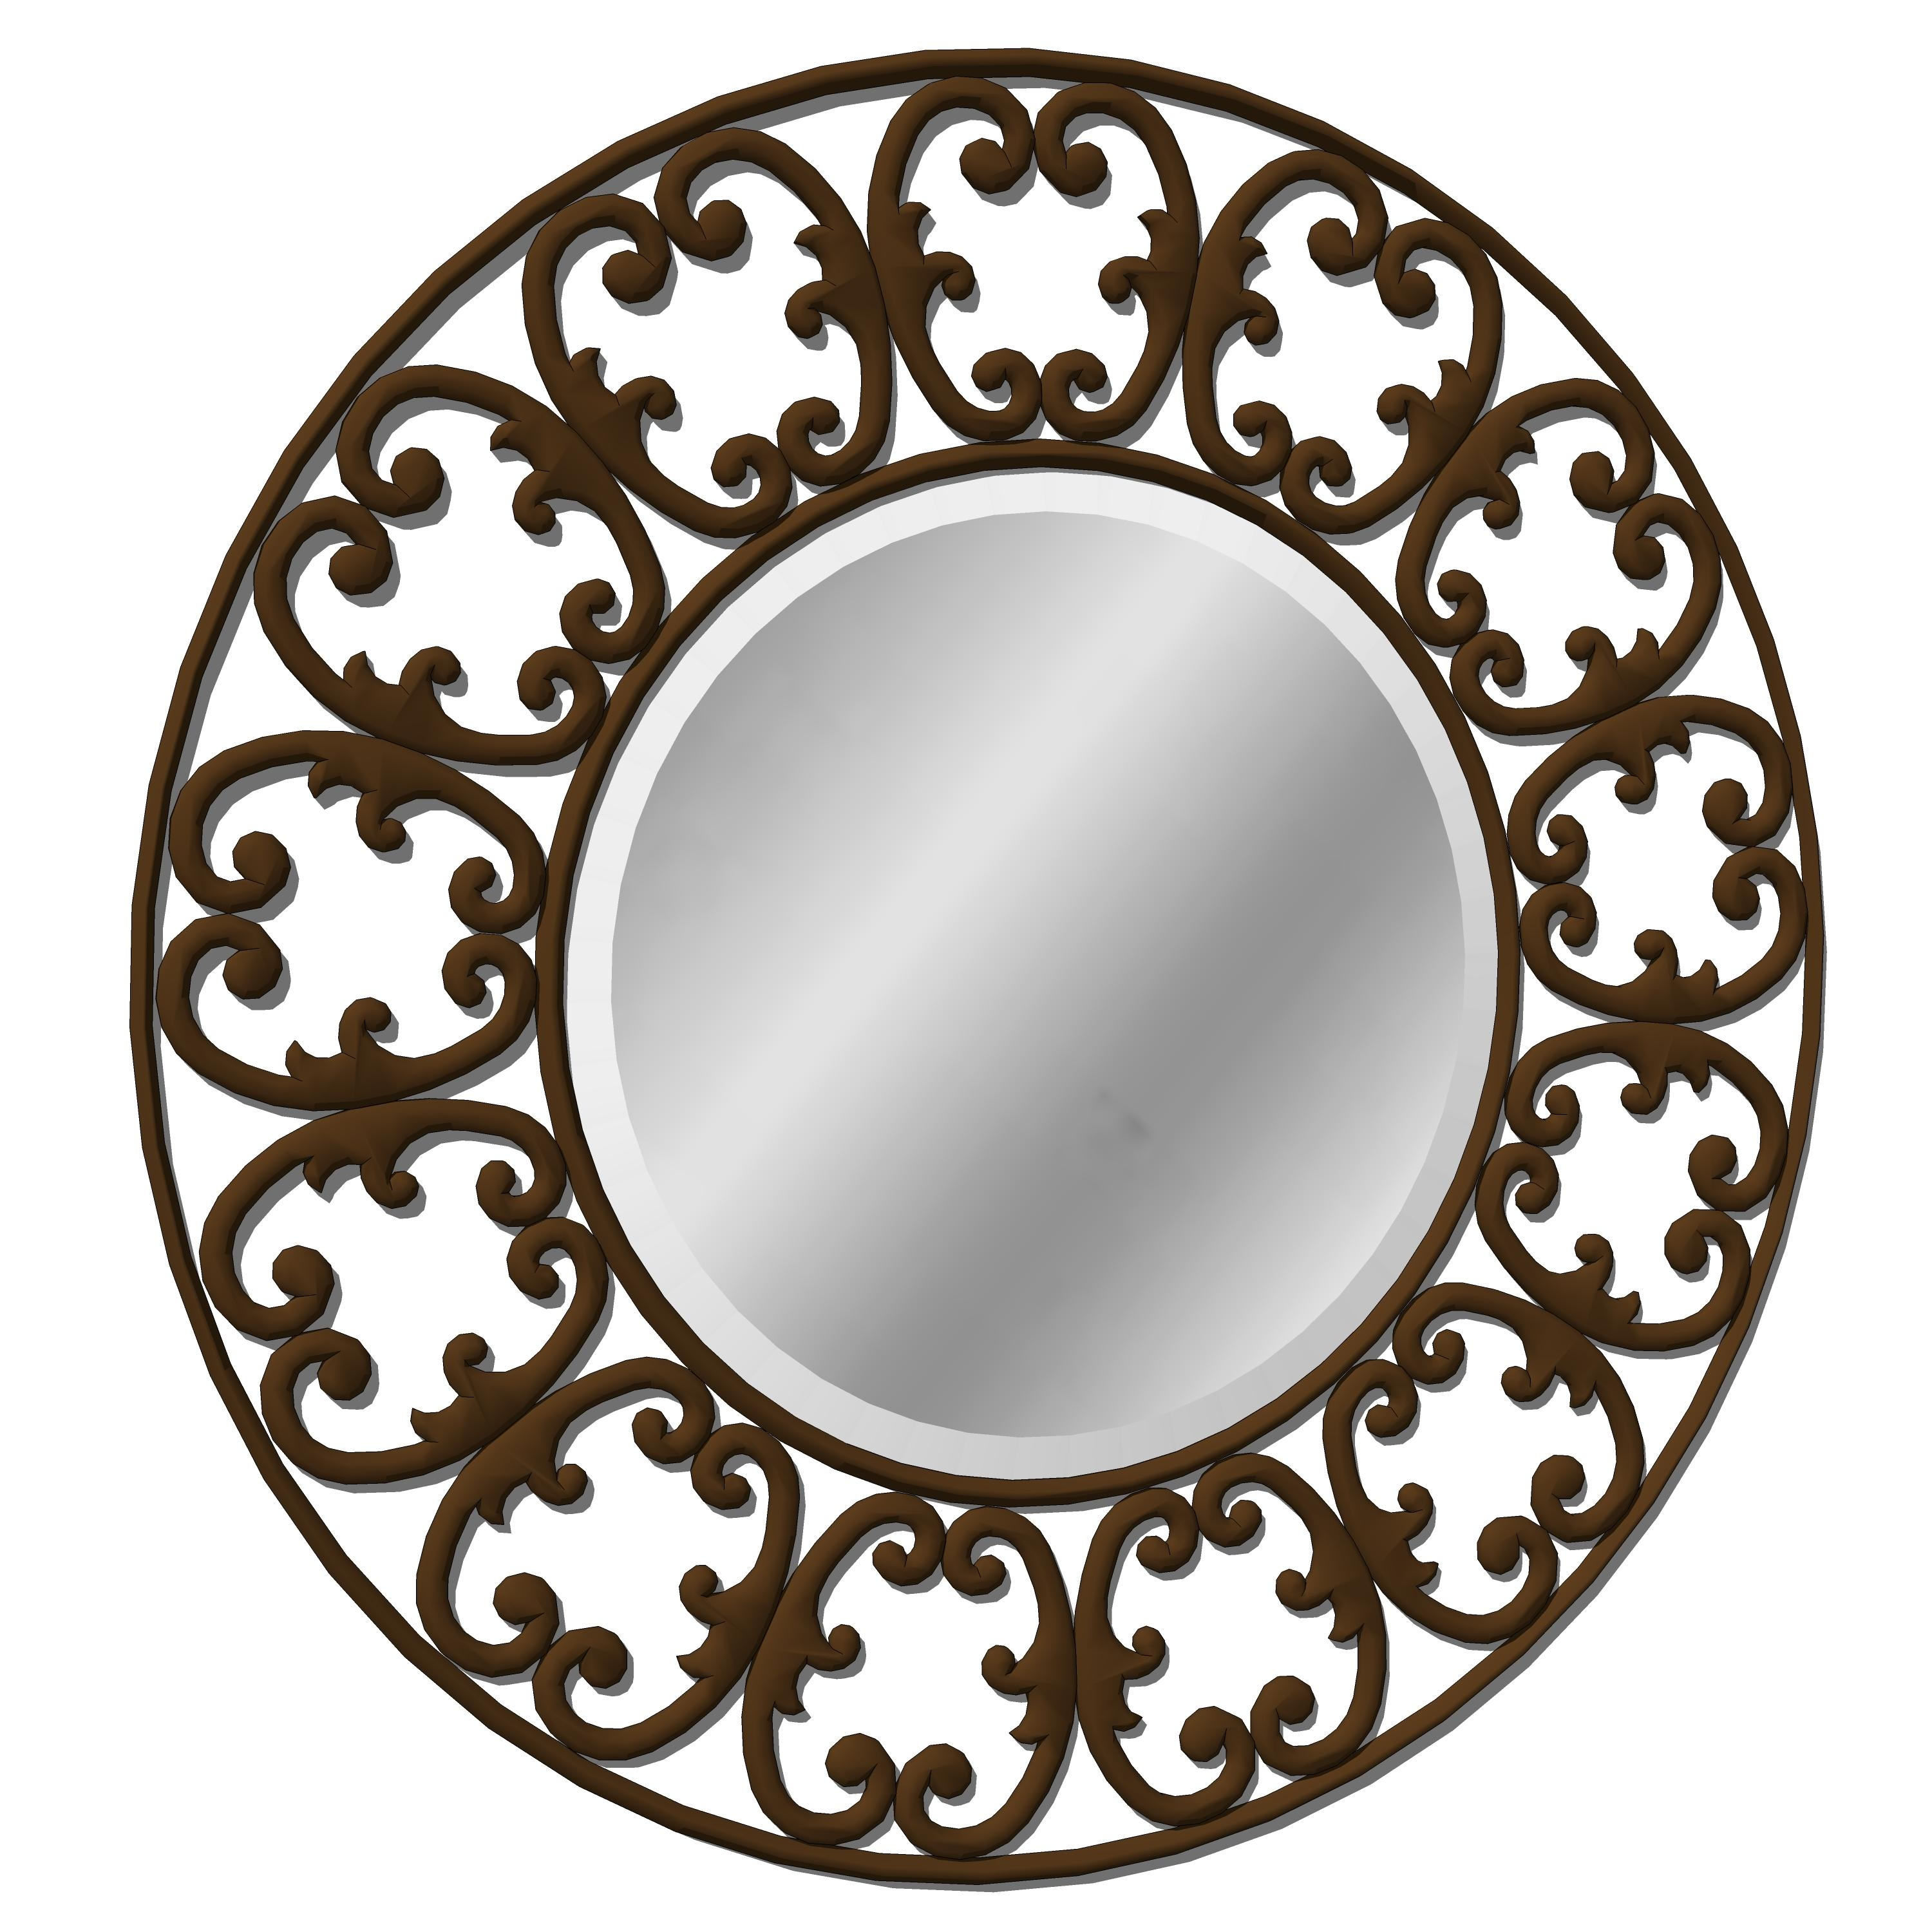 Scrolled Mirror 3D Model – Formfonts 3D Models & Textures Within Rod Iron Mirrors (Image 16 of 20)